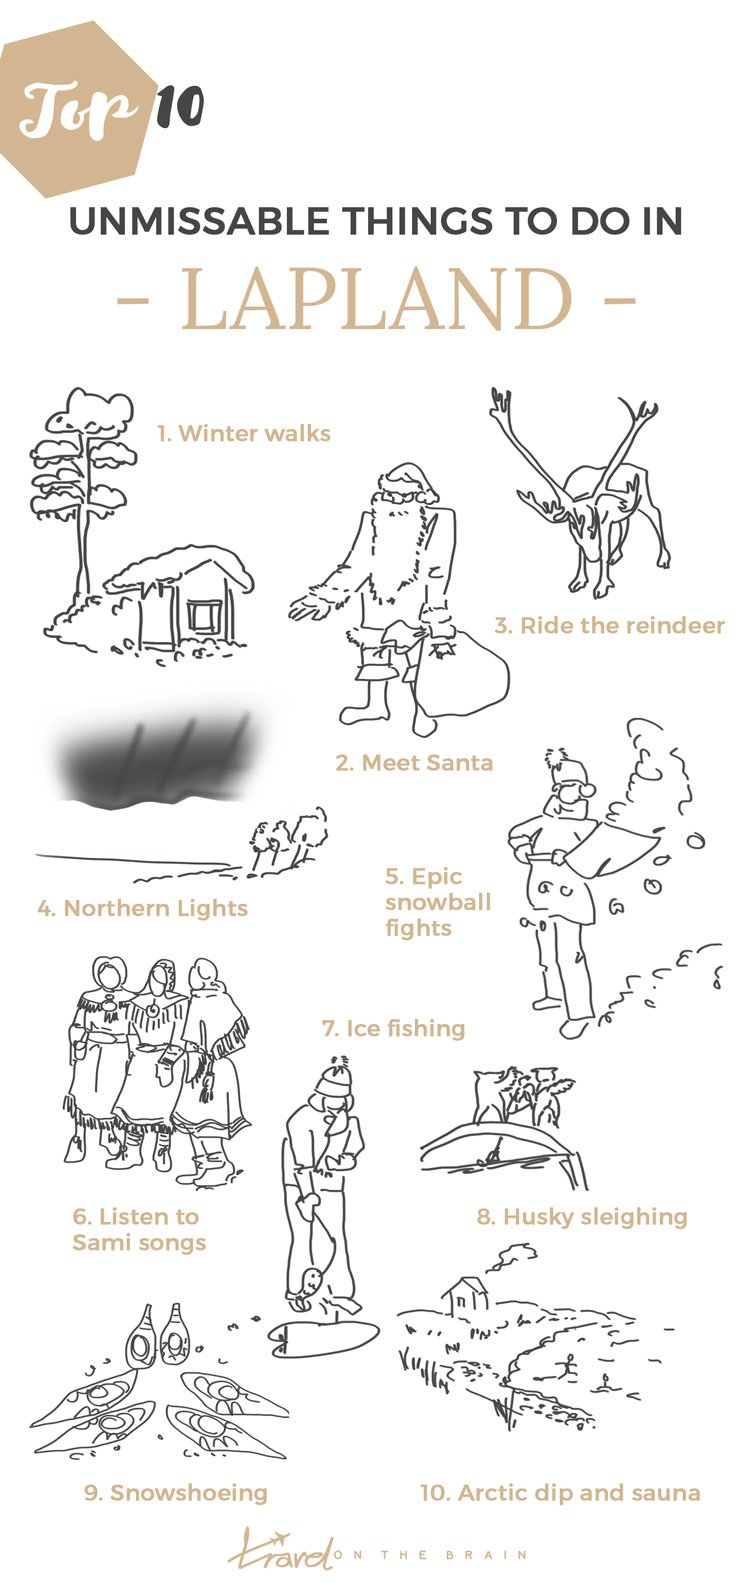 10 Unmissable Reasons to Visit Lapland this Year. Click the image to find out more.